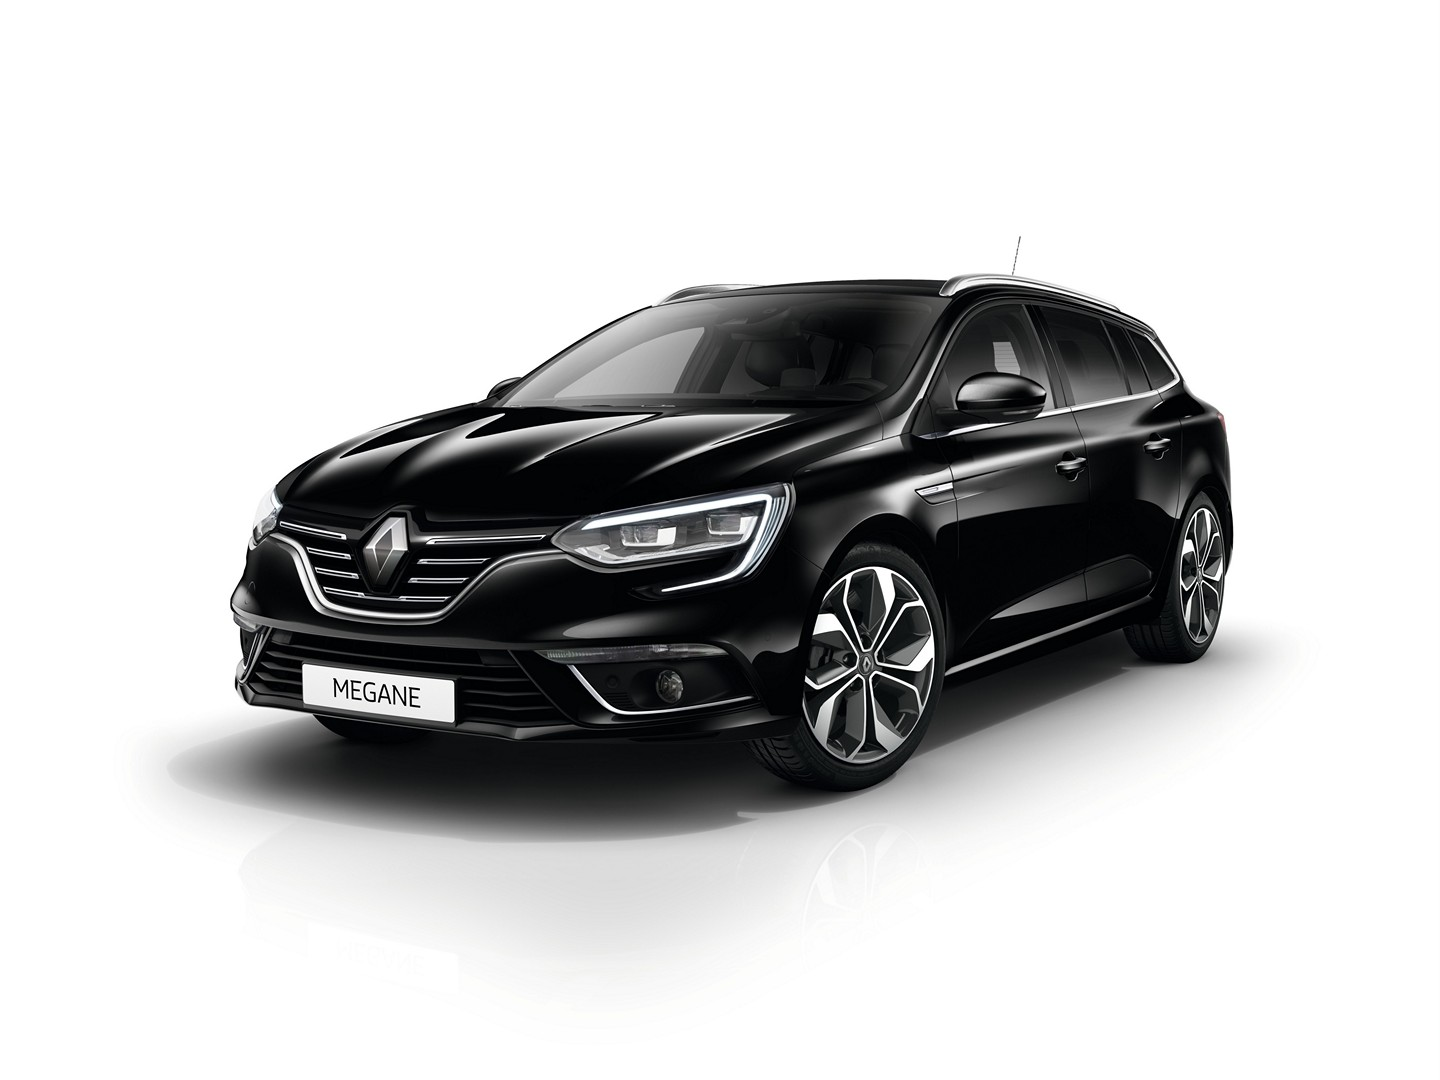 2017 renault megane estate 1 6 dci 130 acceleration test vs hatch autoevolution. Black Bedroom Furniture Sets. Home Design Ideas